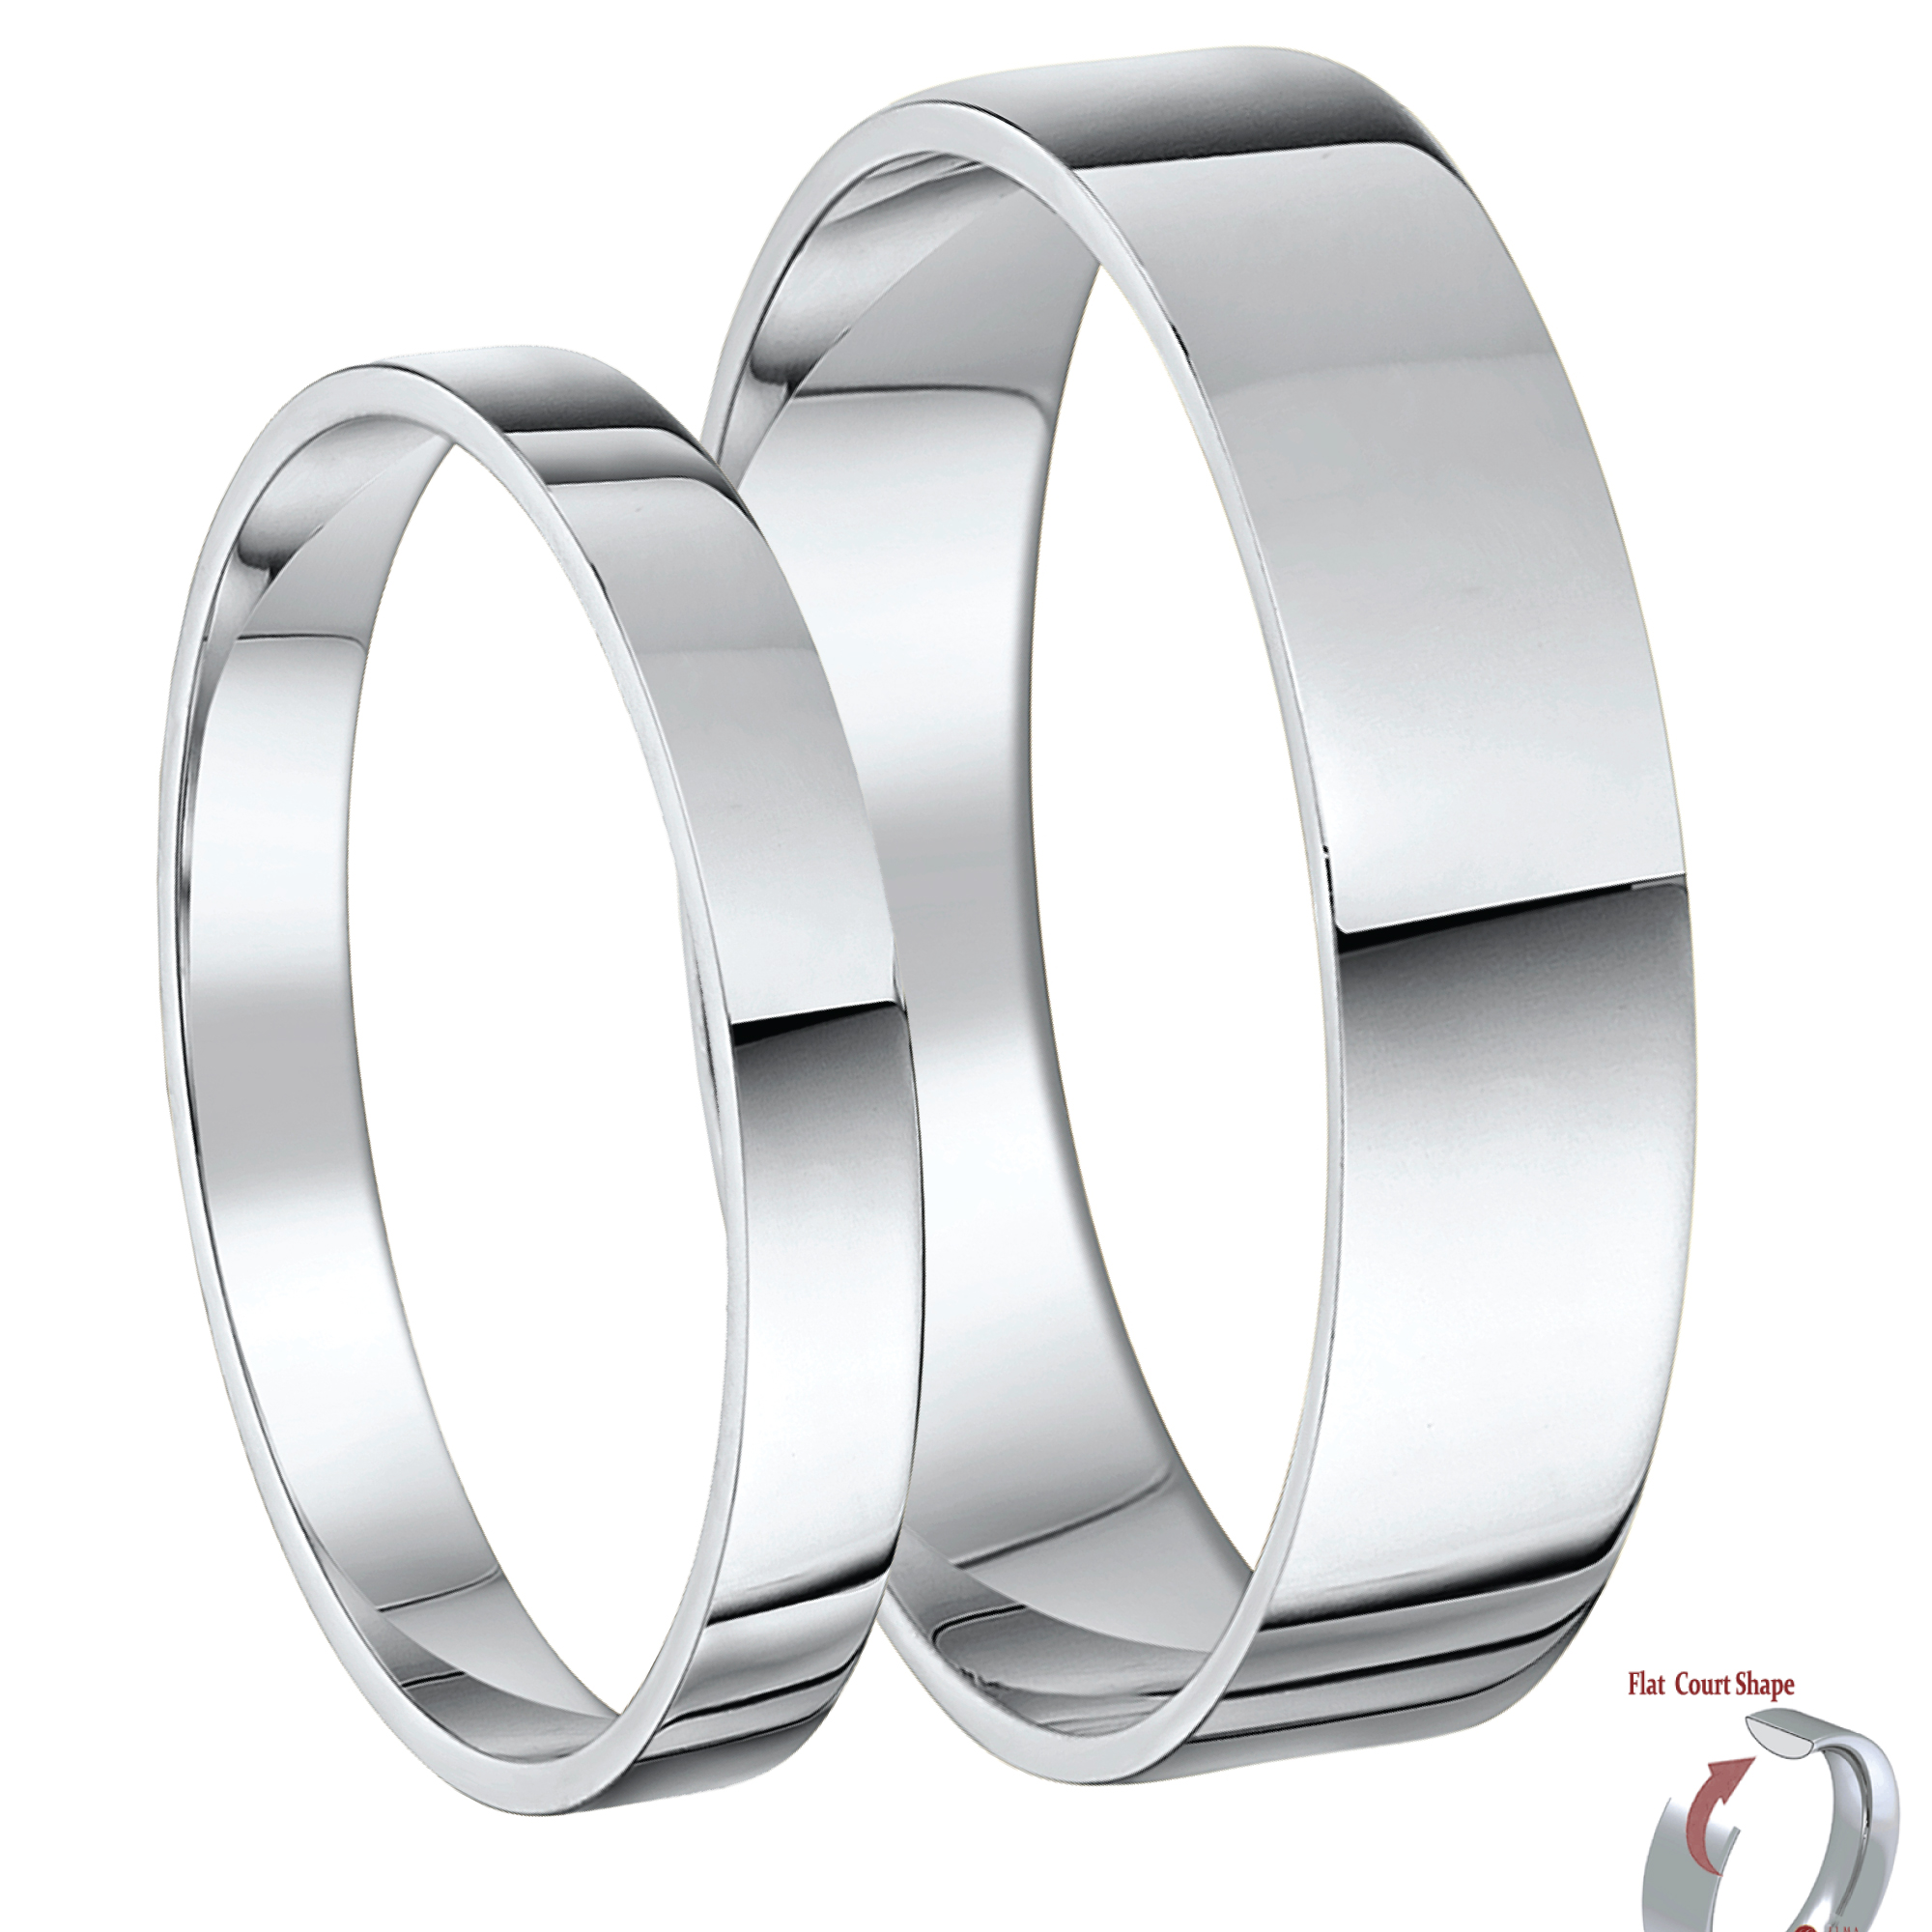 Cobalt Wedding Bands Matching His & Hers Bands Flat Court Comfort 3&5mm